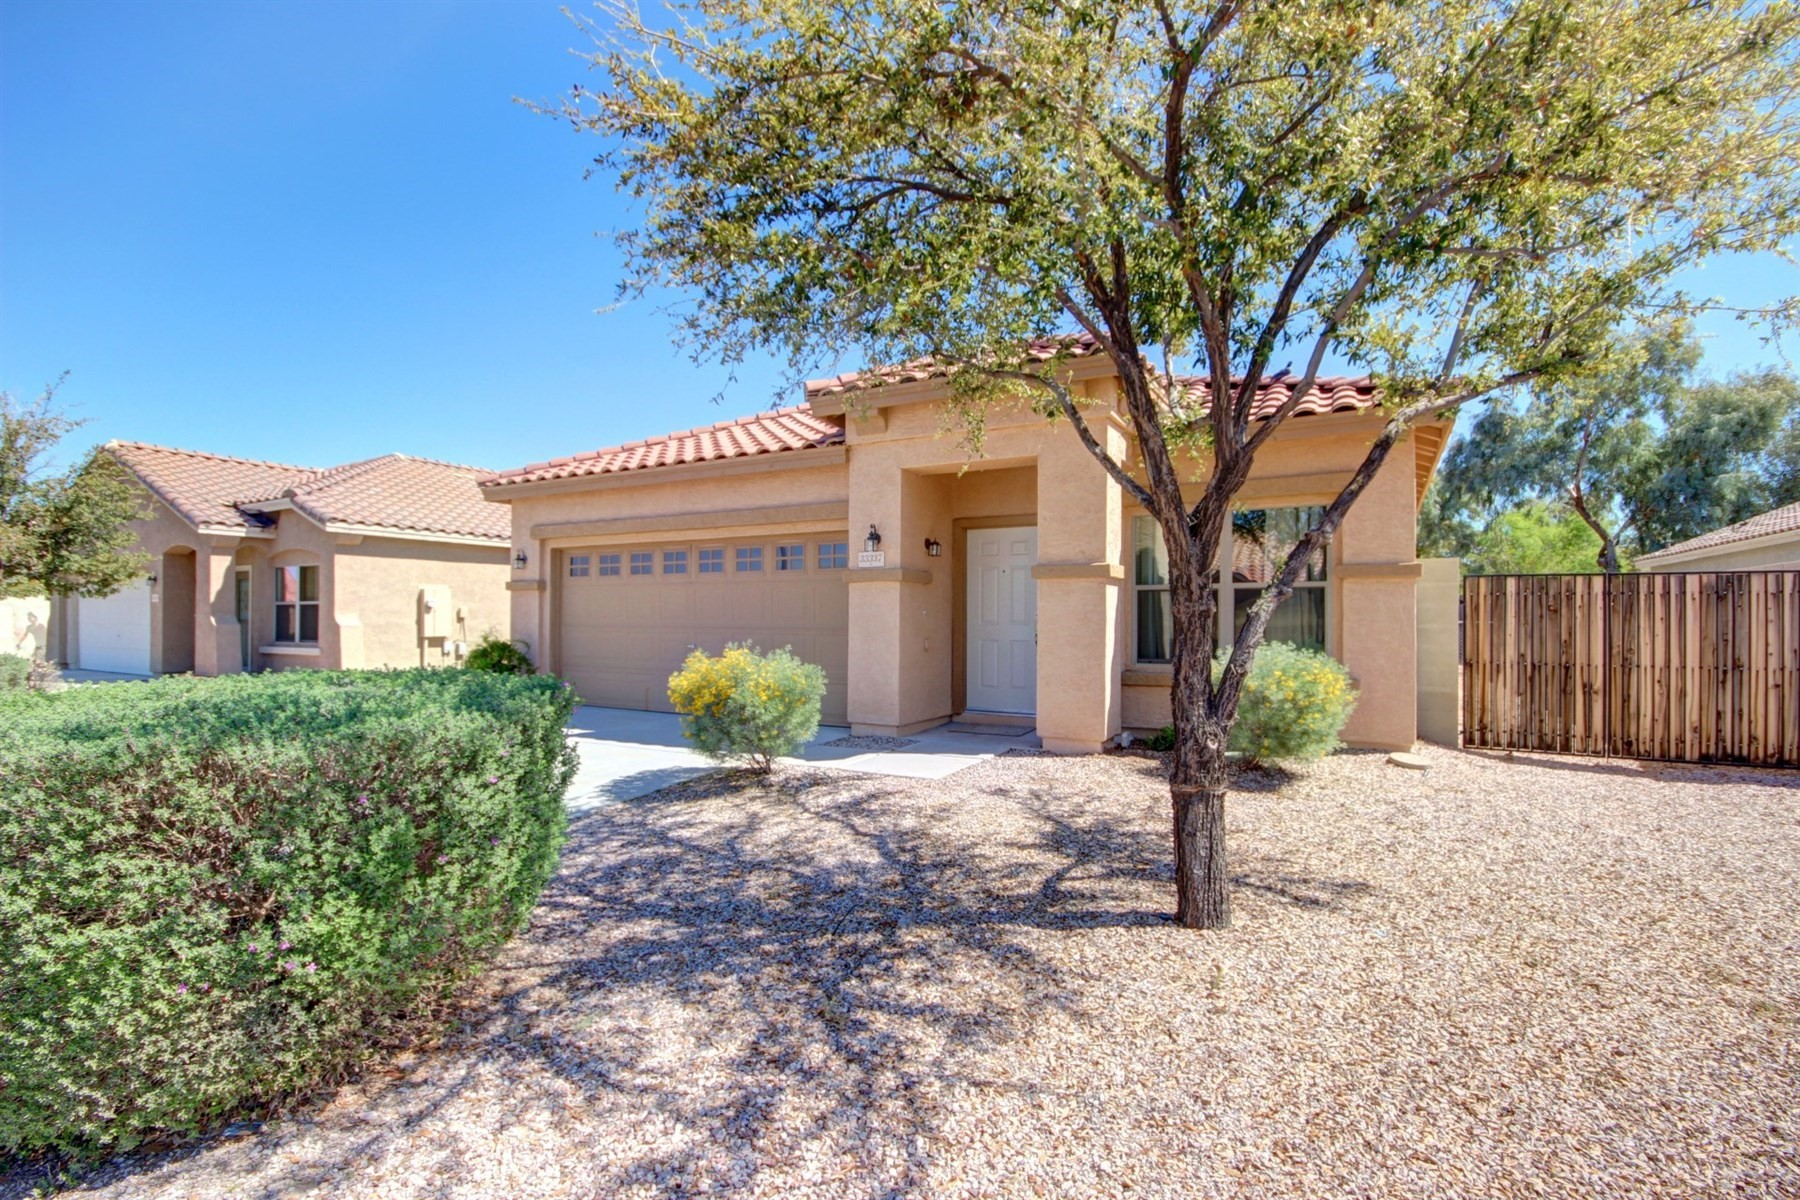 Single Family Home for Sale at Charming and spacious remodel in San Tan Heights 33337 N Sonoran Trl Queen Creek, Arizona, 85142 United States